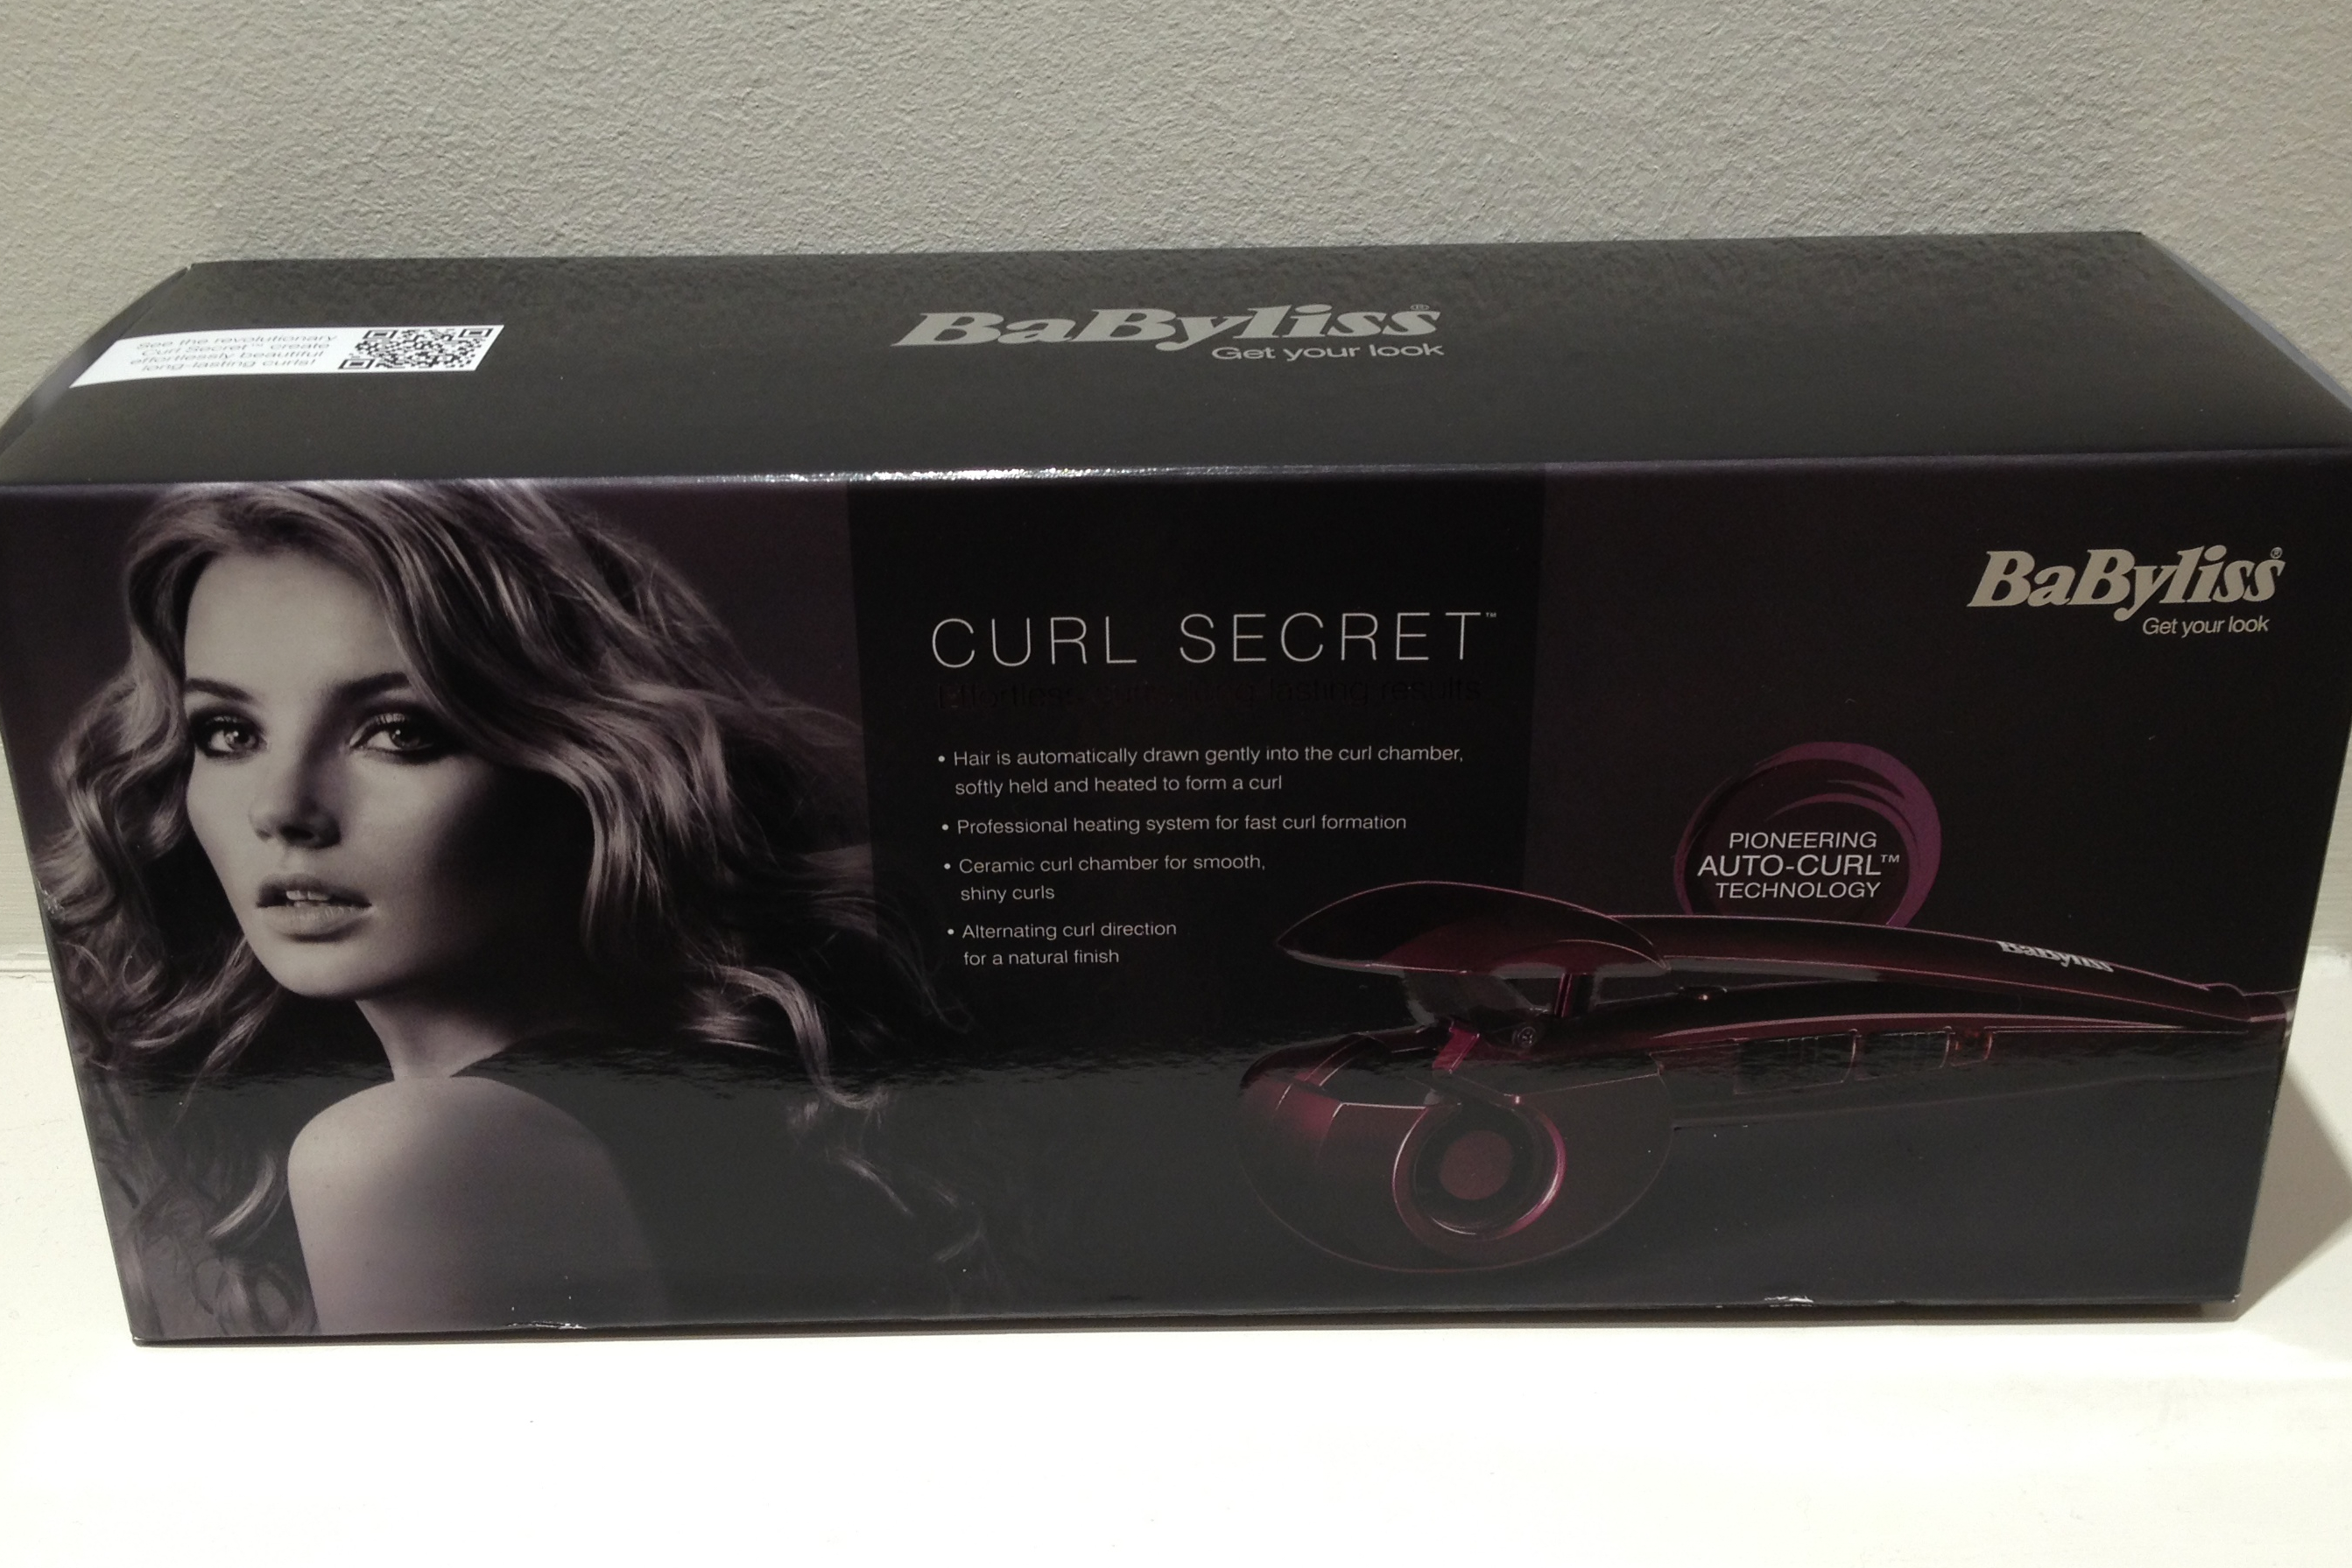 babyliss curl secret review and pics makes curling poker straight hair super easy. Black Bedroom Furniture Sets. Home Design Ideas